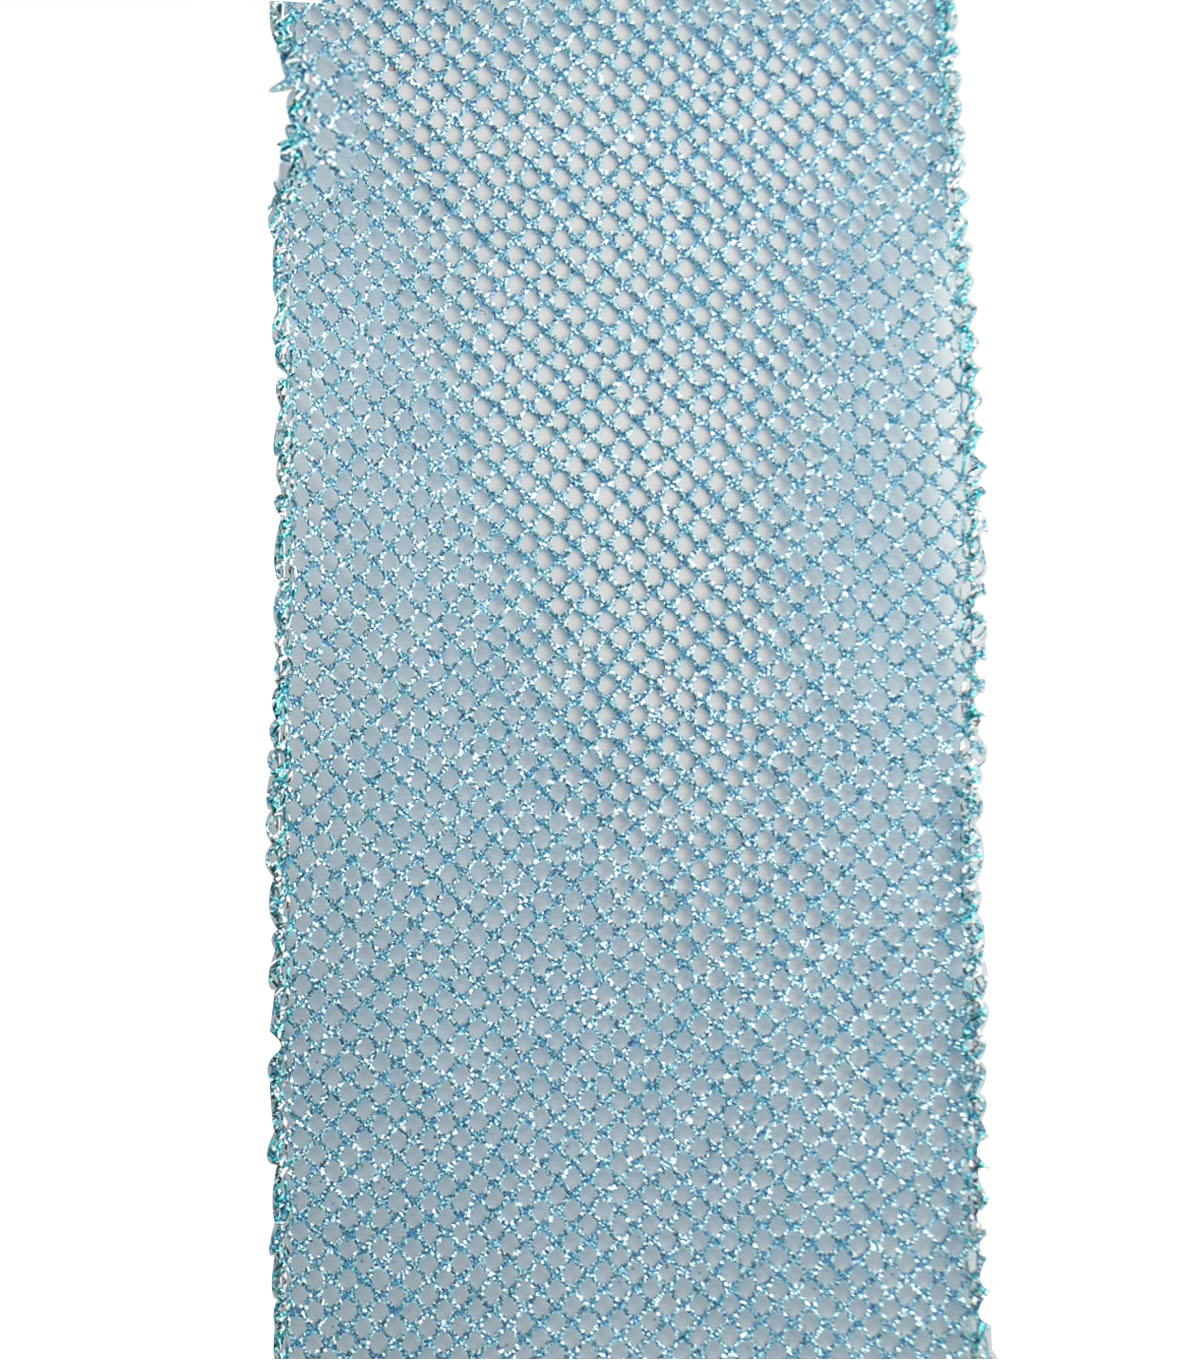 Maker\u0027s Holiday Christmas Glitter Mesh Ribbon 4\u0027\u0027x40\u0027-Light Blue